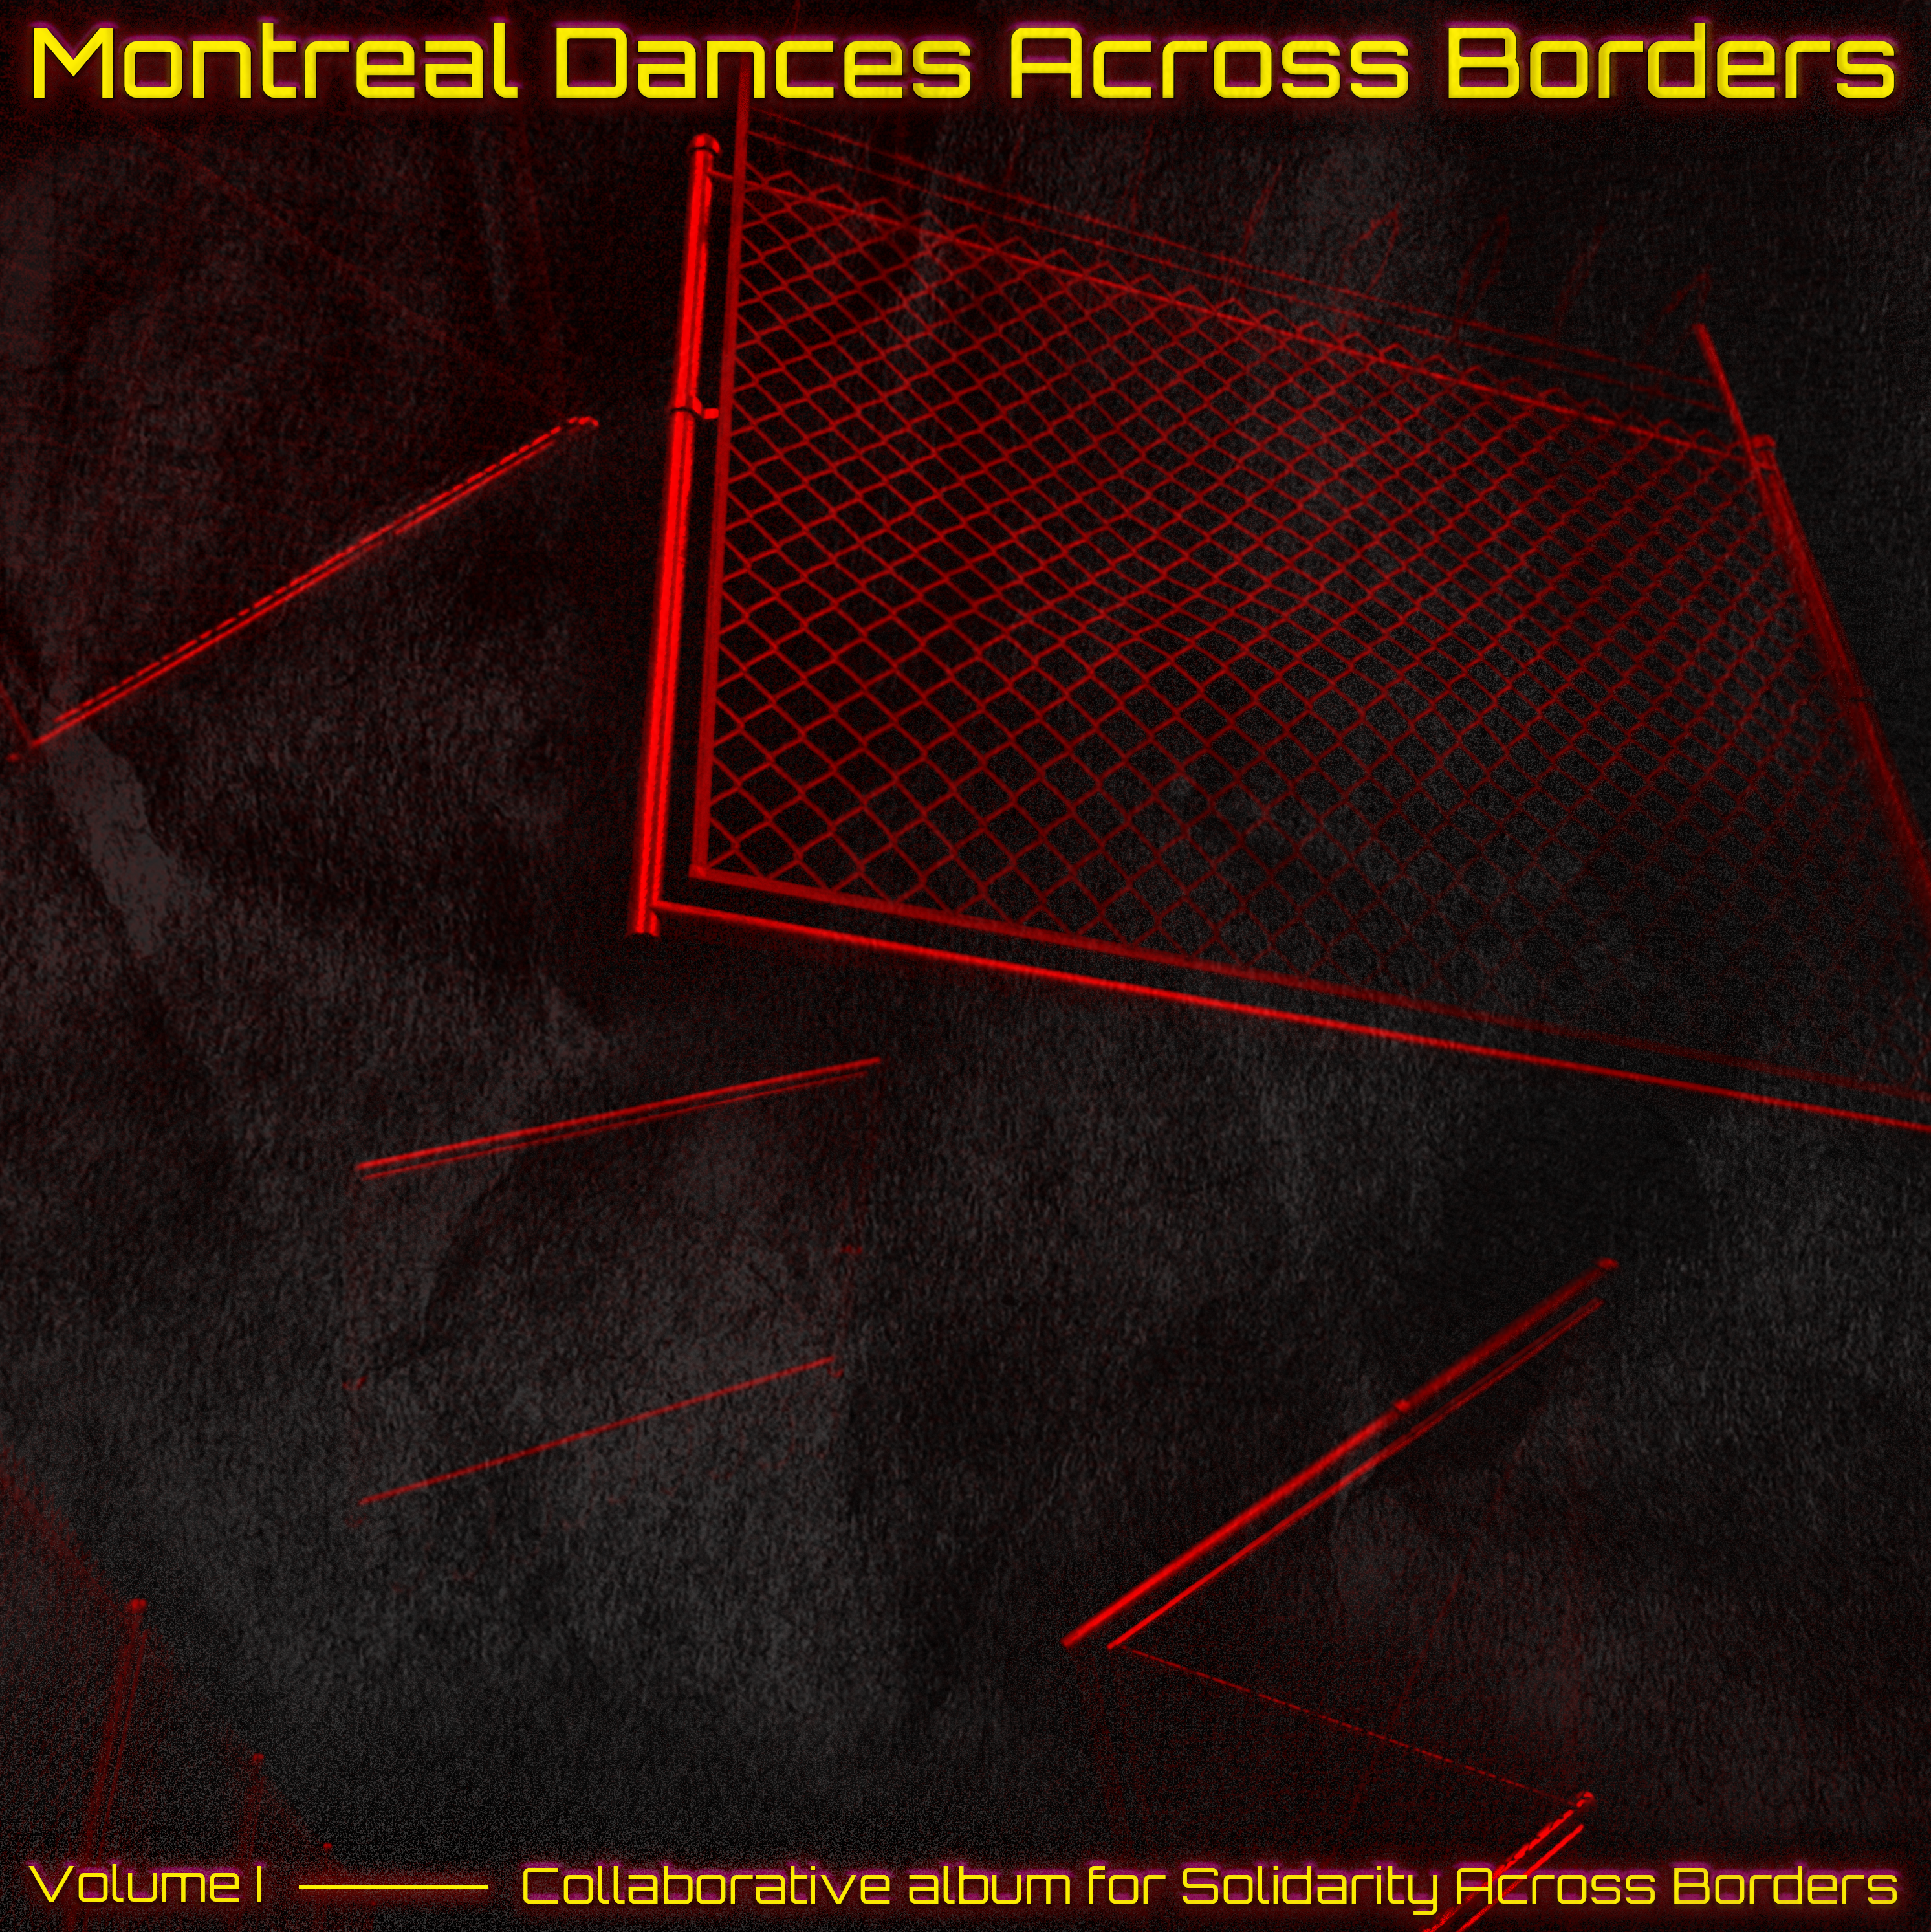 MTL Dances Across Borders Honeydrip